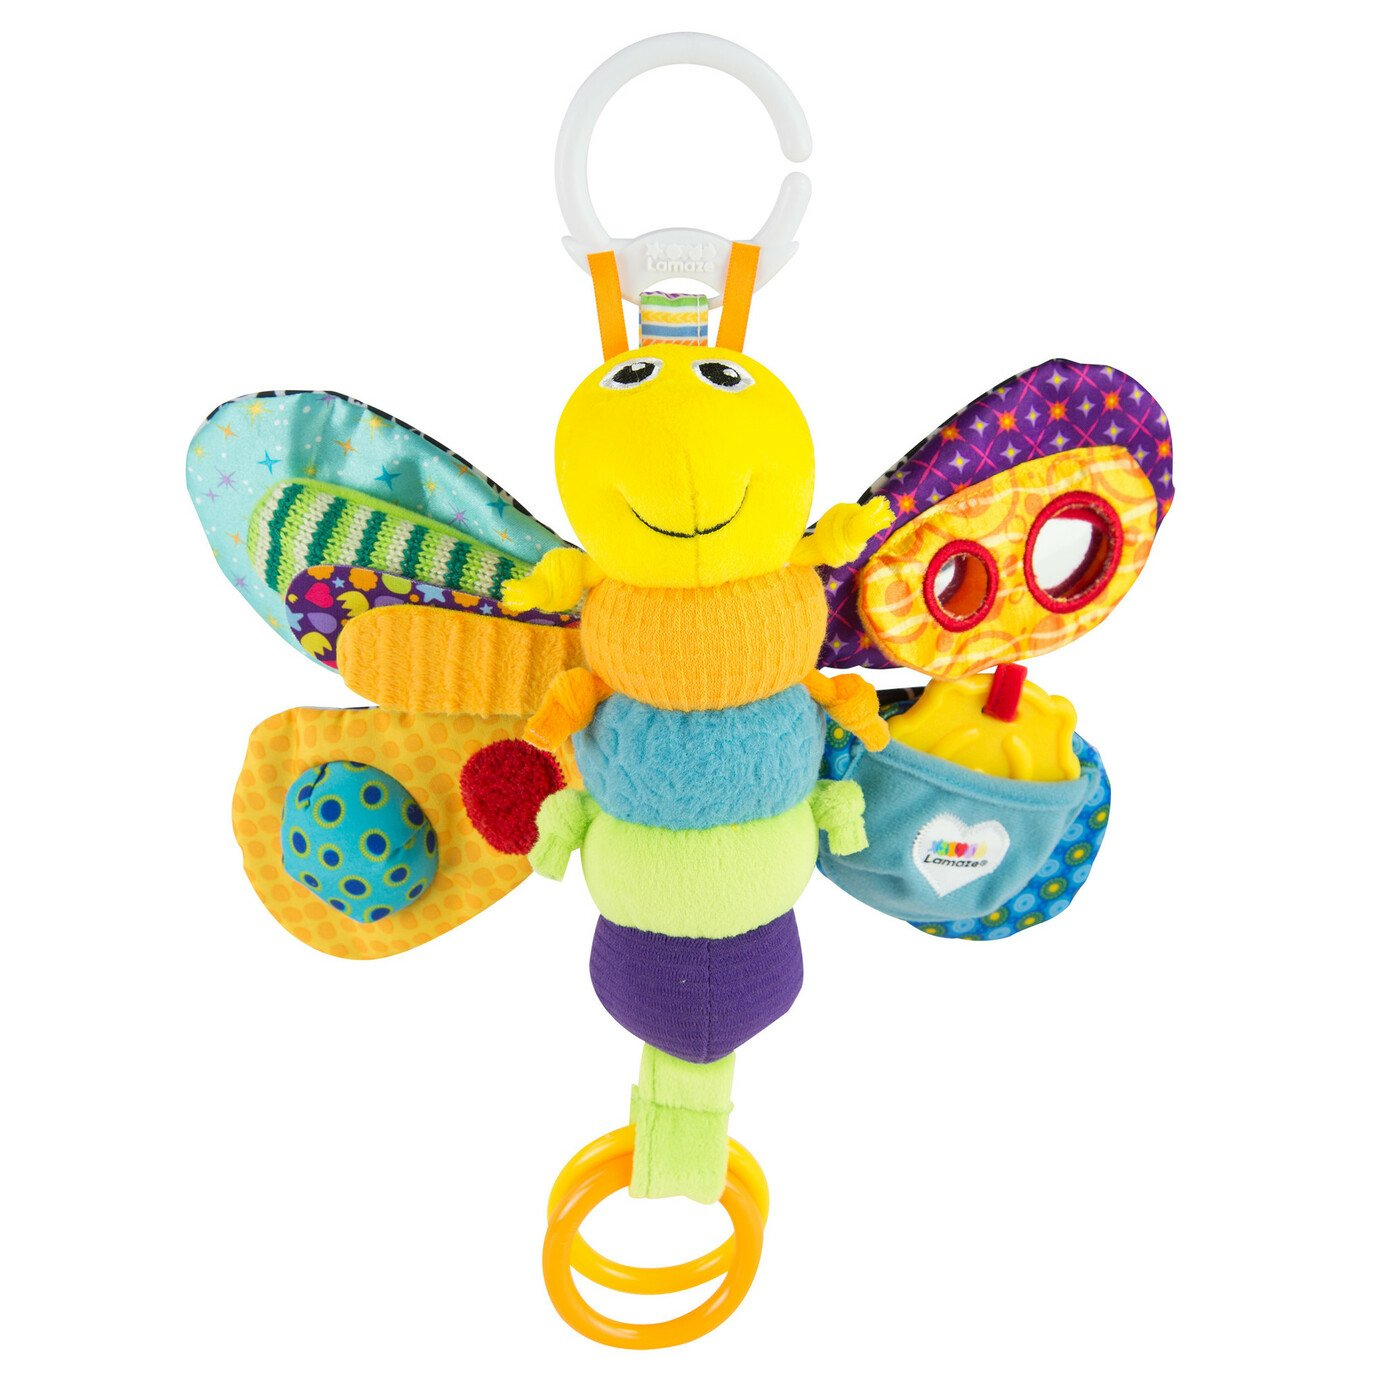 Lamaze Freddie the Firefly. from lamaze